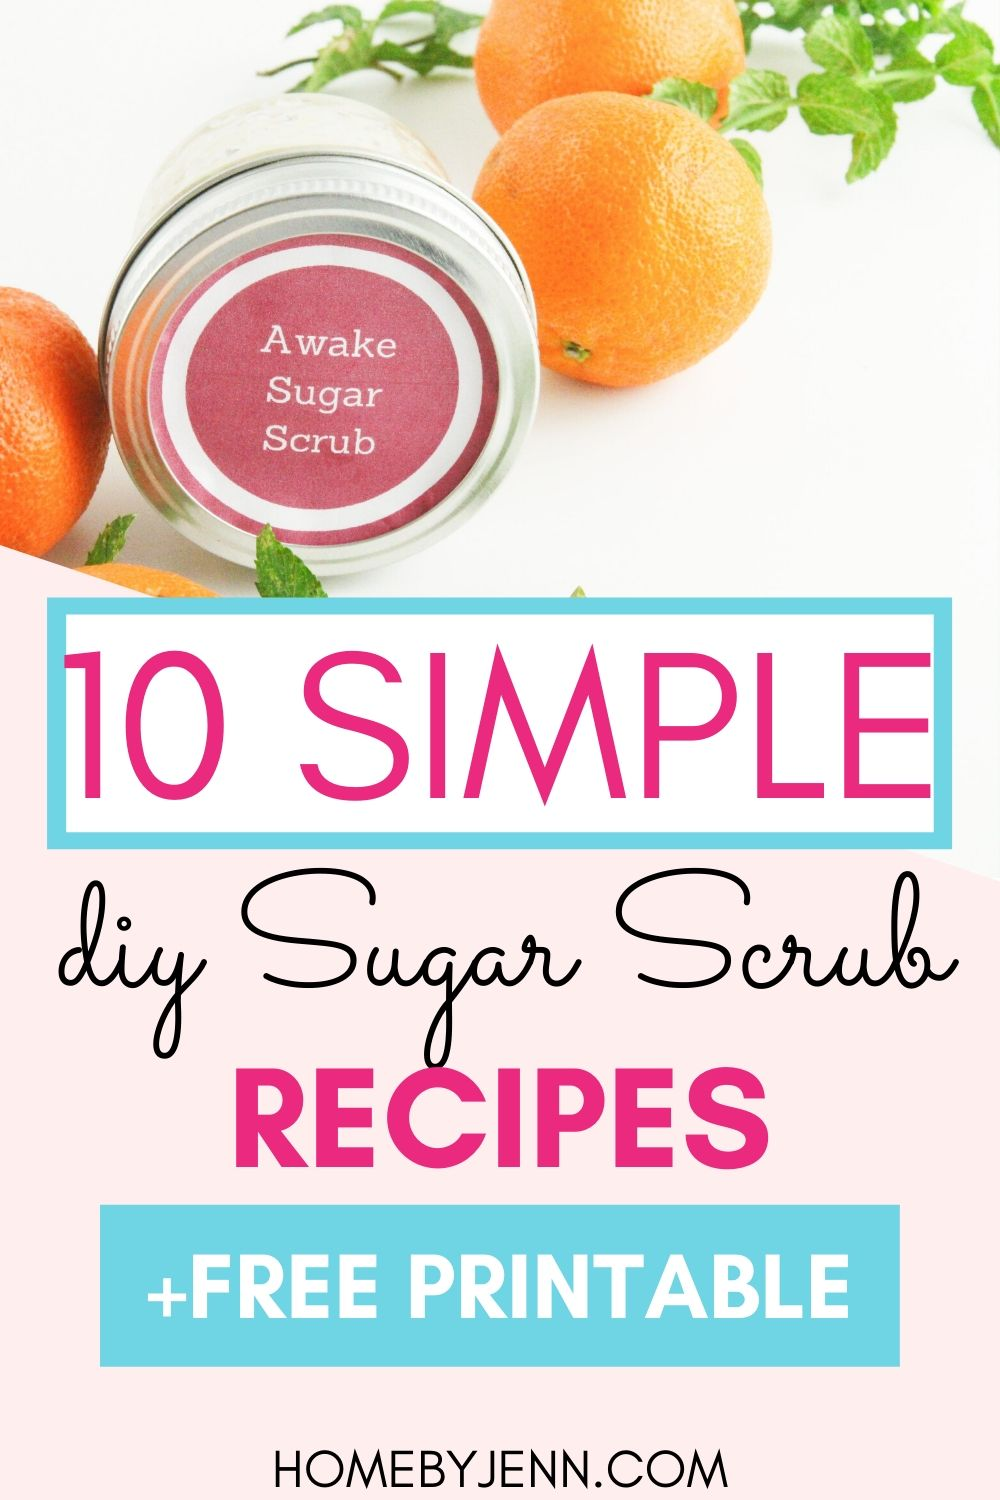 Learn how to make your own homemade sugar scrubs for your hands, face, lips, and body.  In this post get 10 DIY sugar scrub recipes that you can make with ingredients you probably have at home now. #DIY #sugarscrub #homemade #DIYsugarscrub #lipsugarscrub #handscrub #DIYbeauty via @homebyjenn